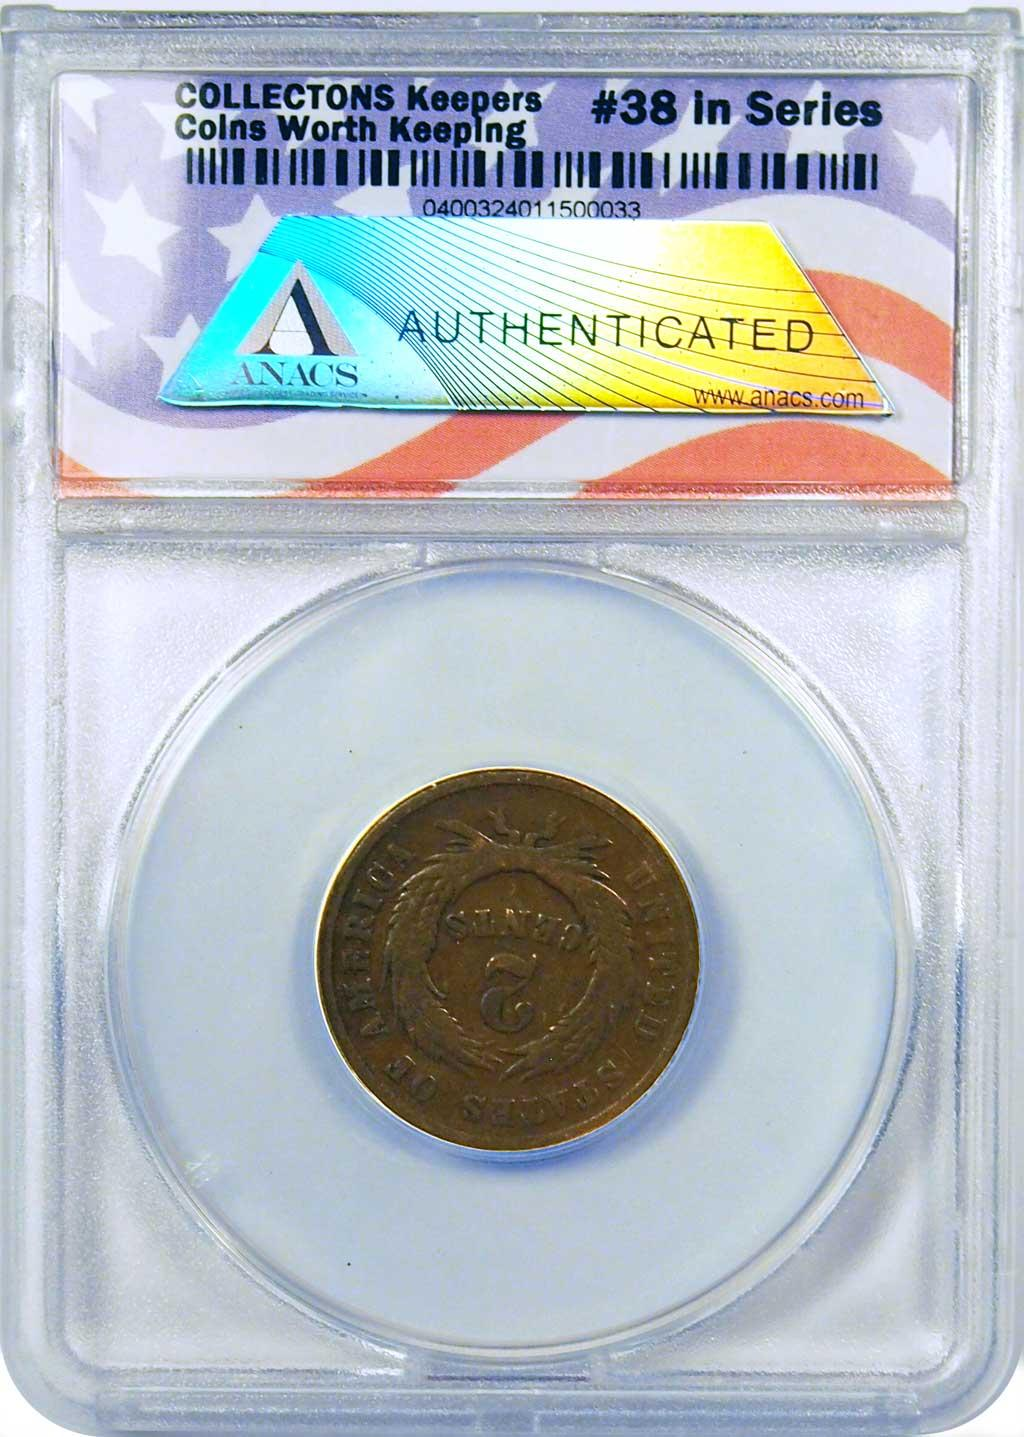 CollecTons Keepers #38: 1864 Two-Cent Piece Certified in Exclusive ANACS Holder